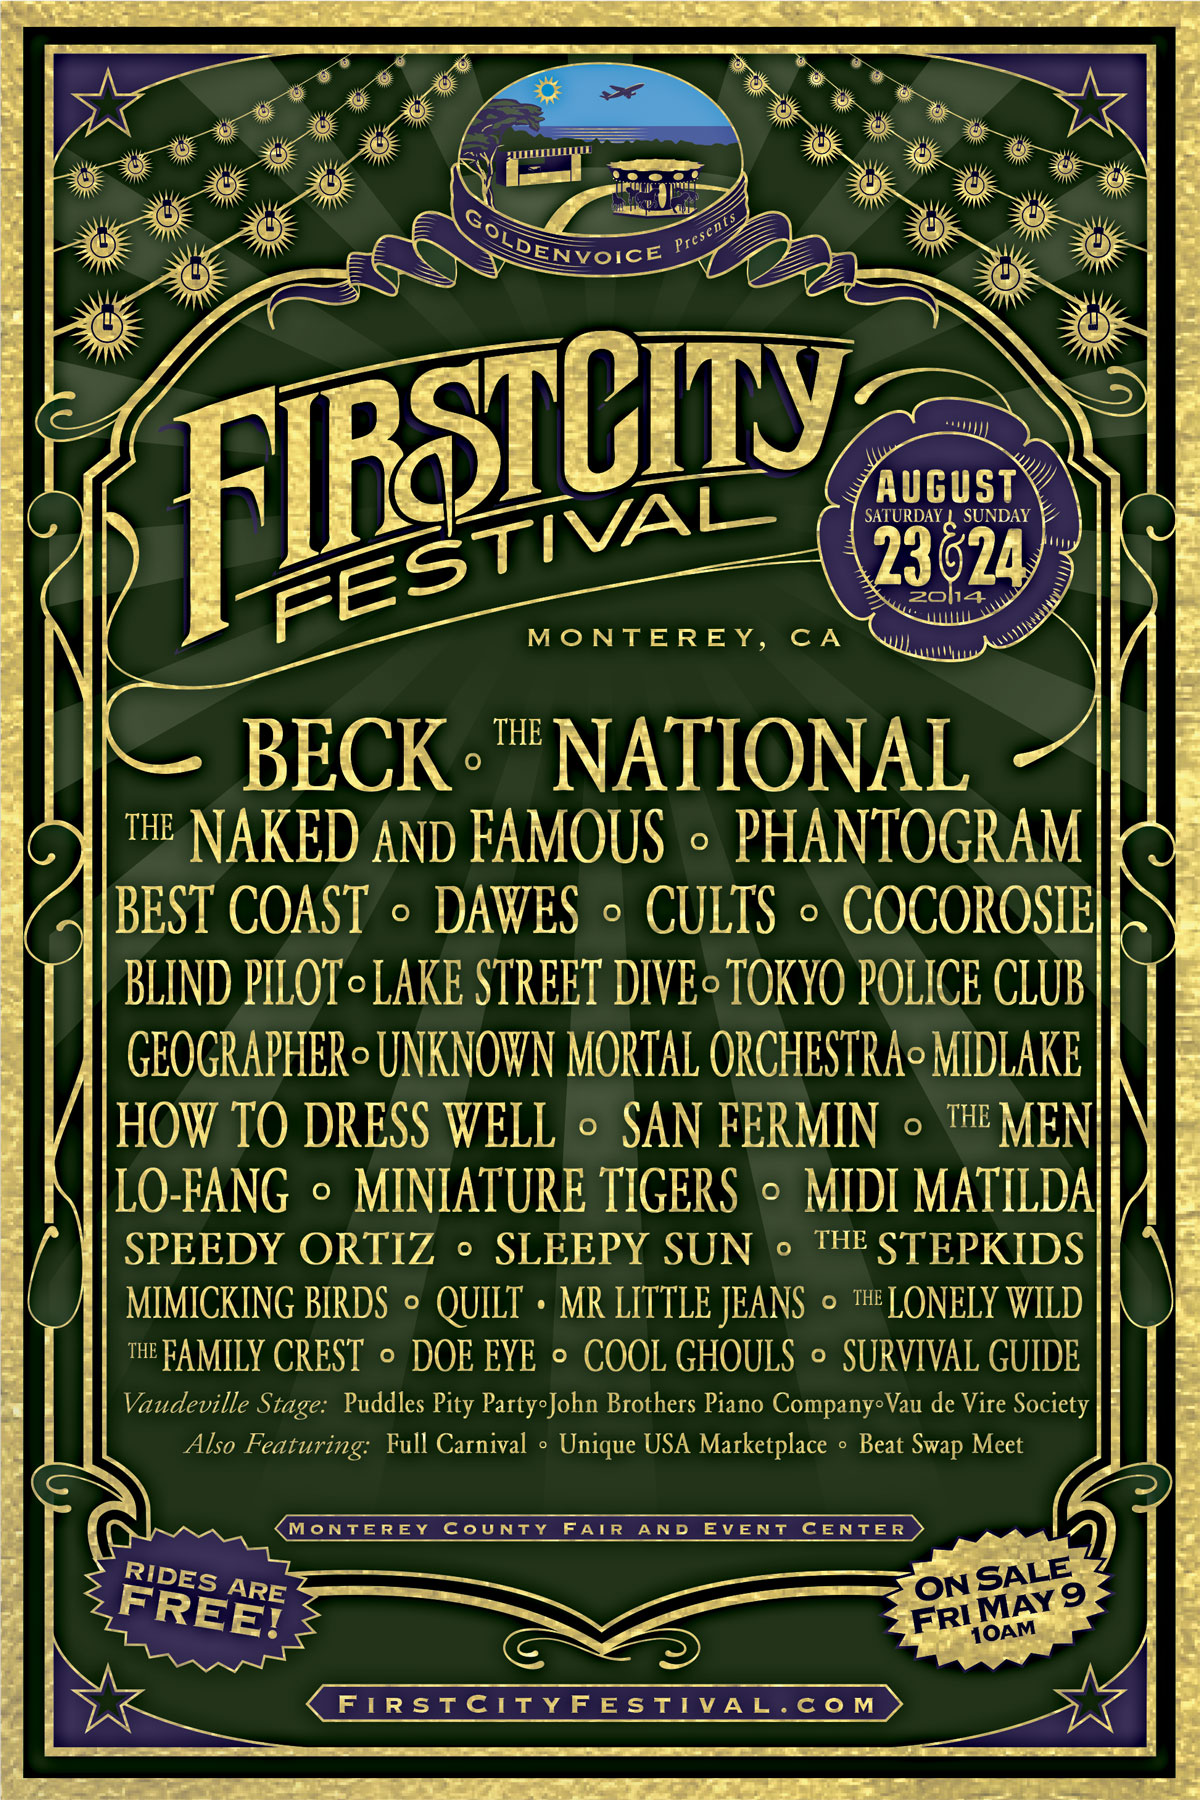 First City Festival 2014